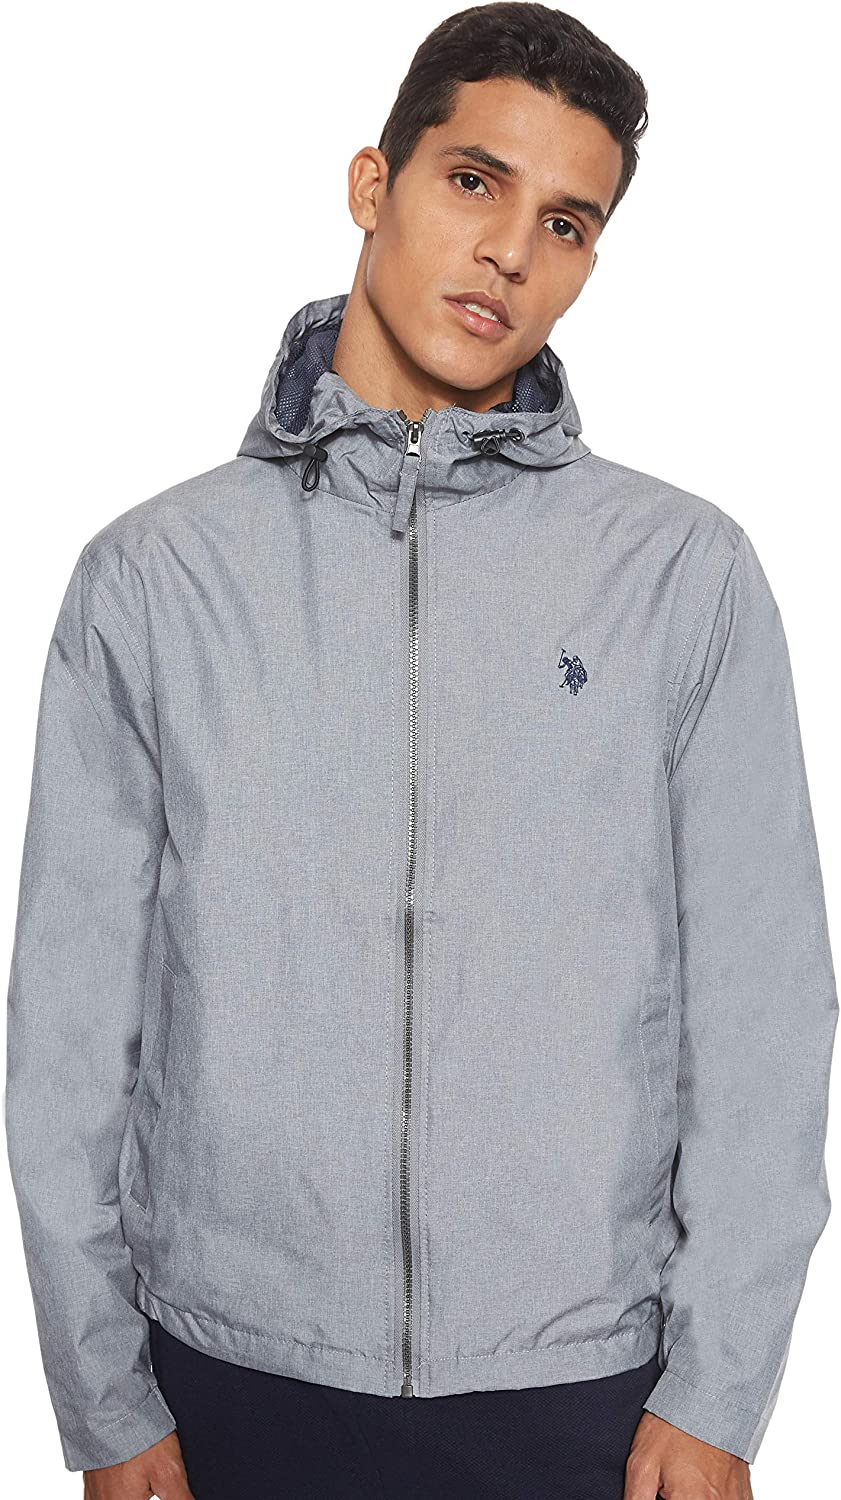 U.S. Polo Assn. Men's Jacket Windbreaker NEW before selling Spasm price Classic Solid